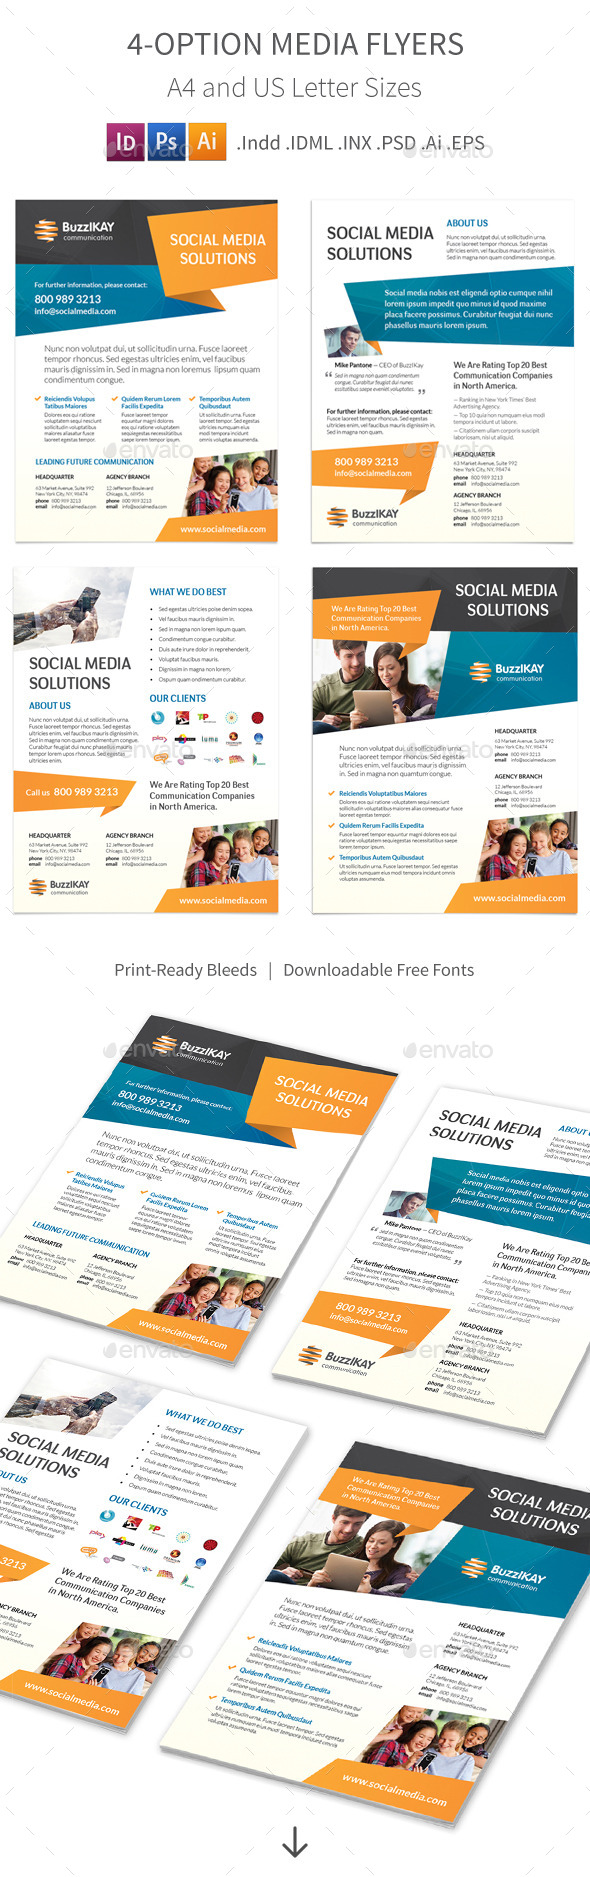 Media and Communication Flyers – 4 Options - Corporate Flyers